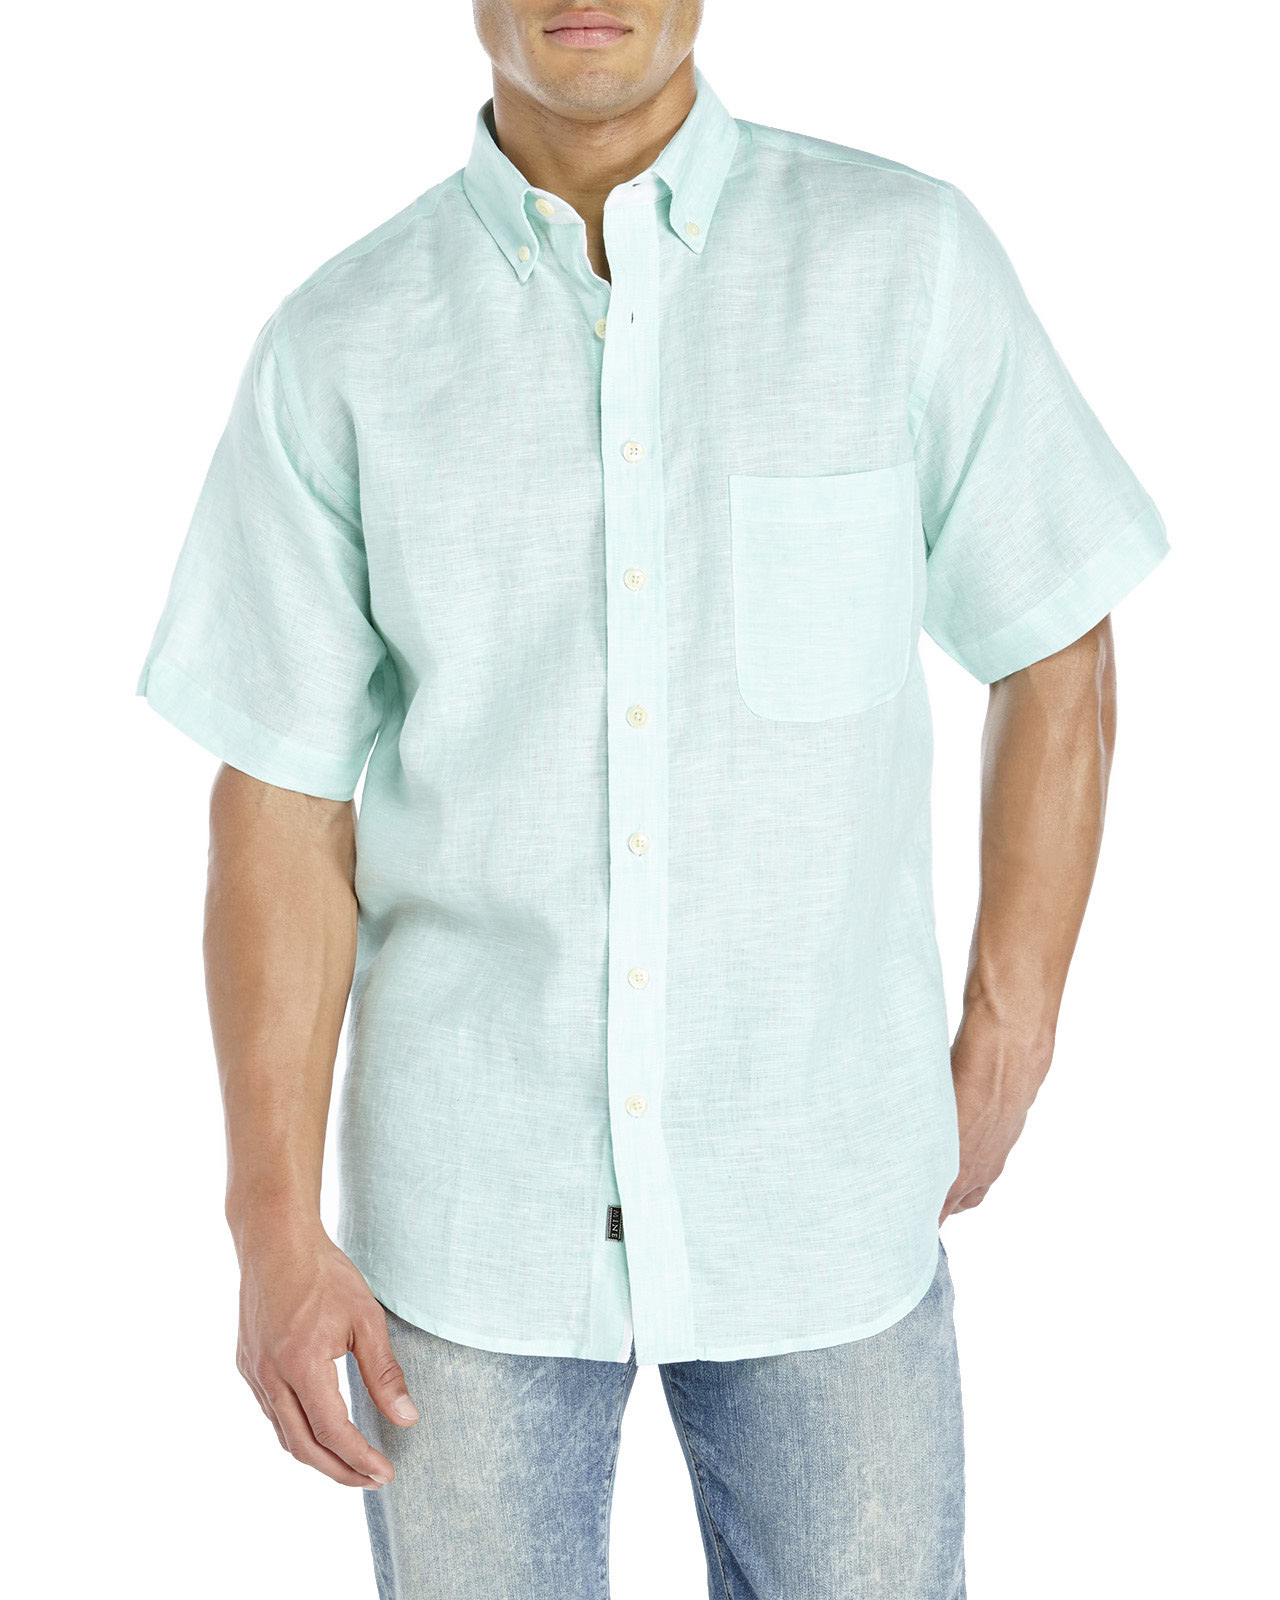 Linen Amalfi Shirt (SS) A sleek and sexy, button-down, short sleeve Italian dress shirt with a 'Roma' spread collar and straight-cut hem. If you're looking for a timeless, elegant linen shirt, try this best-seller: our ever-popular Linen Amalfi Shirt/5(93).